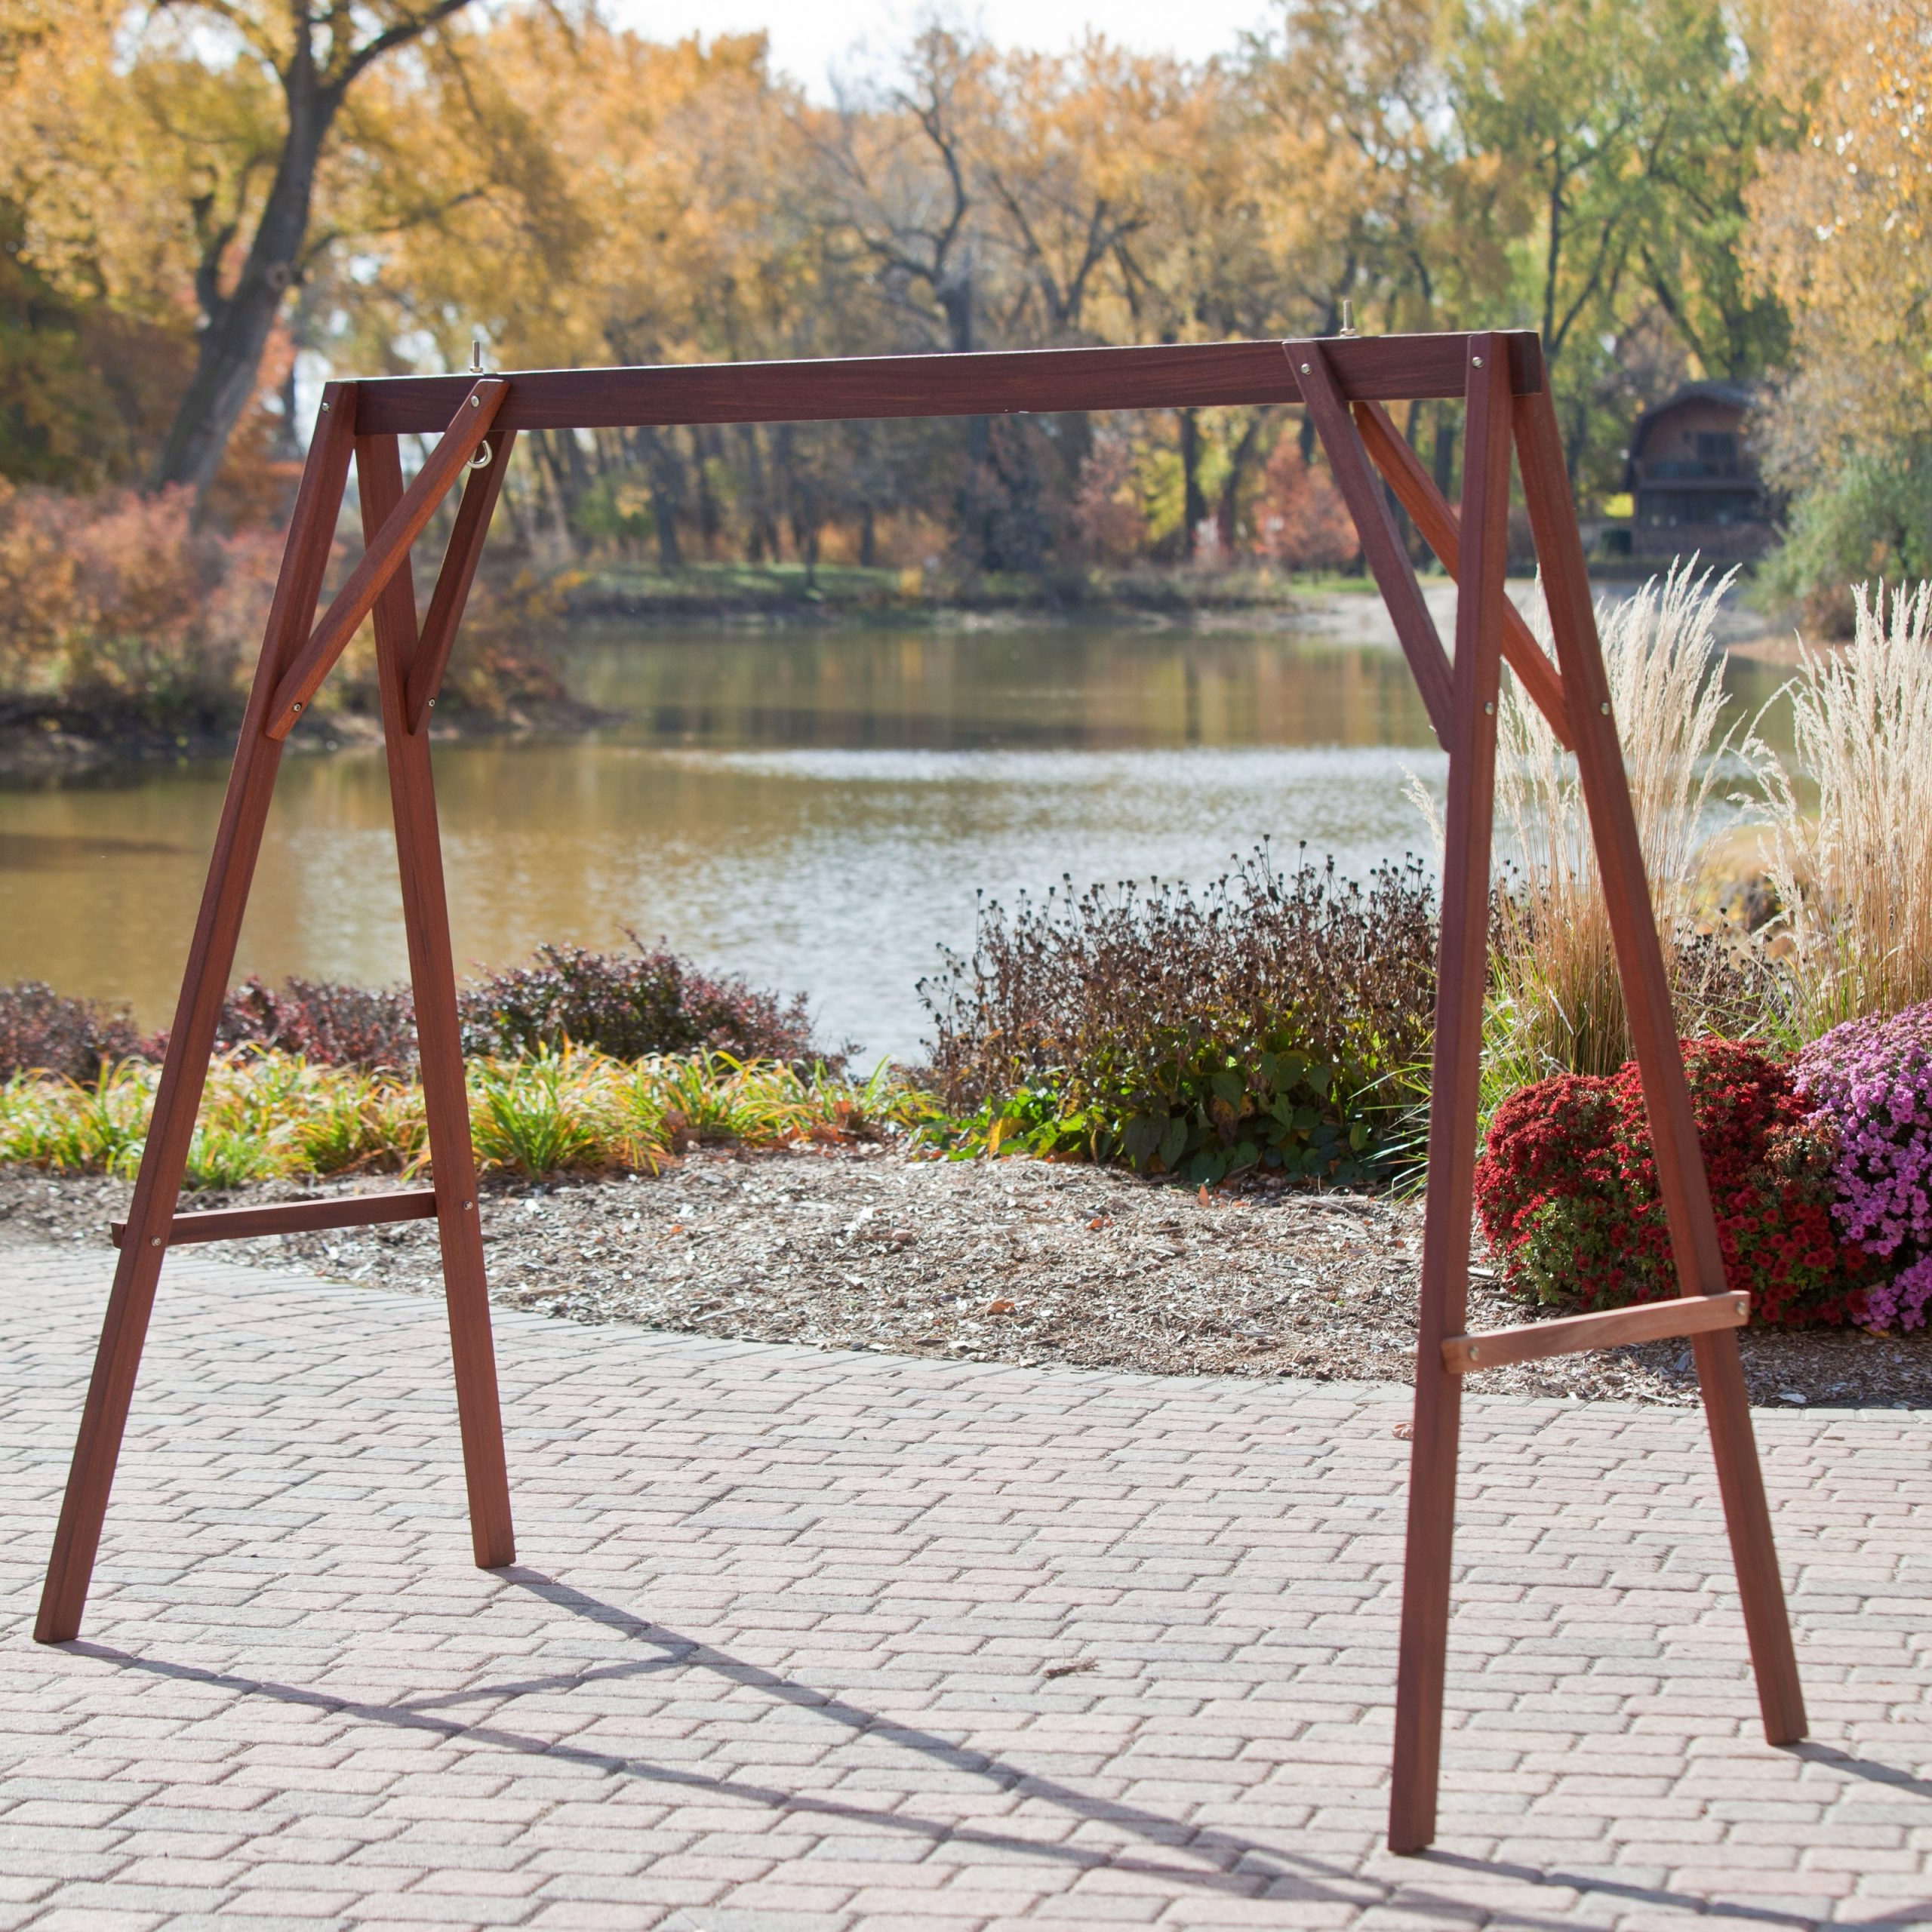 Well Known Patio Porch Swings With Stand Throughout Metal Porch Swings With Stands (View 13 of 30)